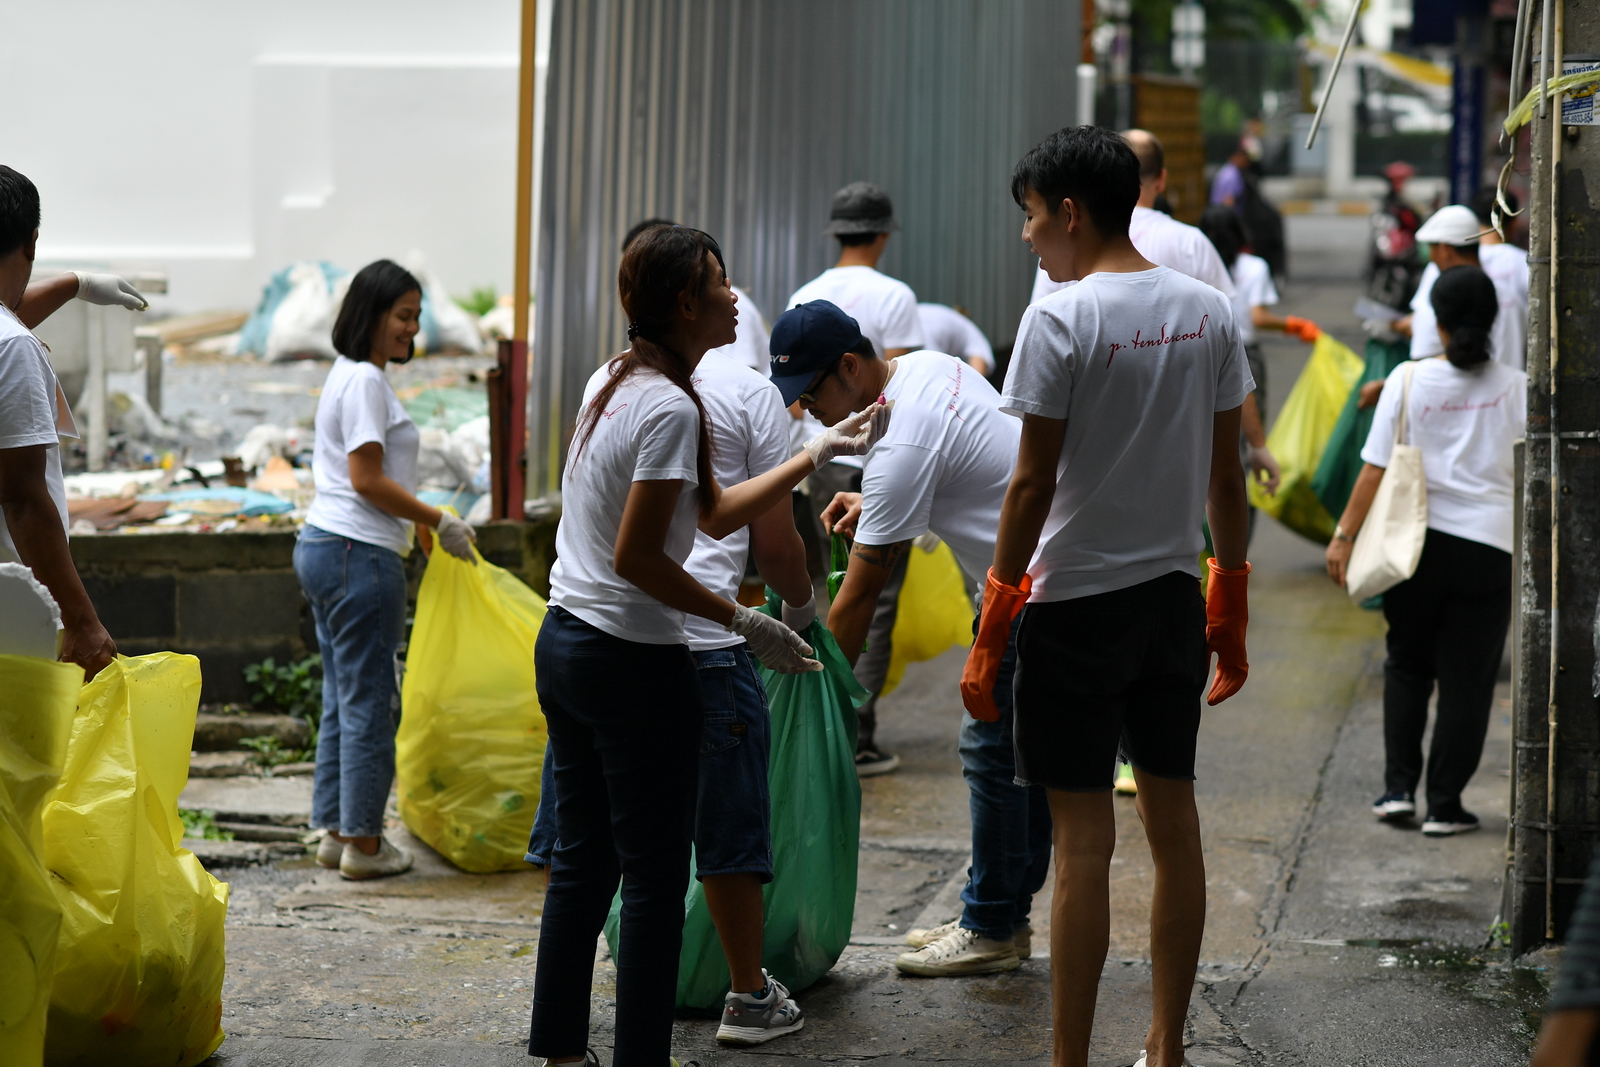 PTendercool-Event-Clean Up The World-190921-110